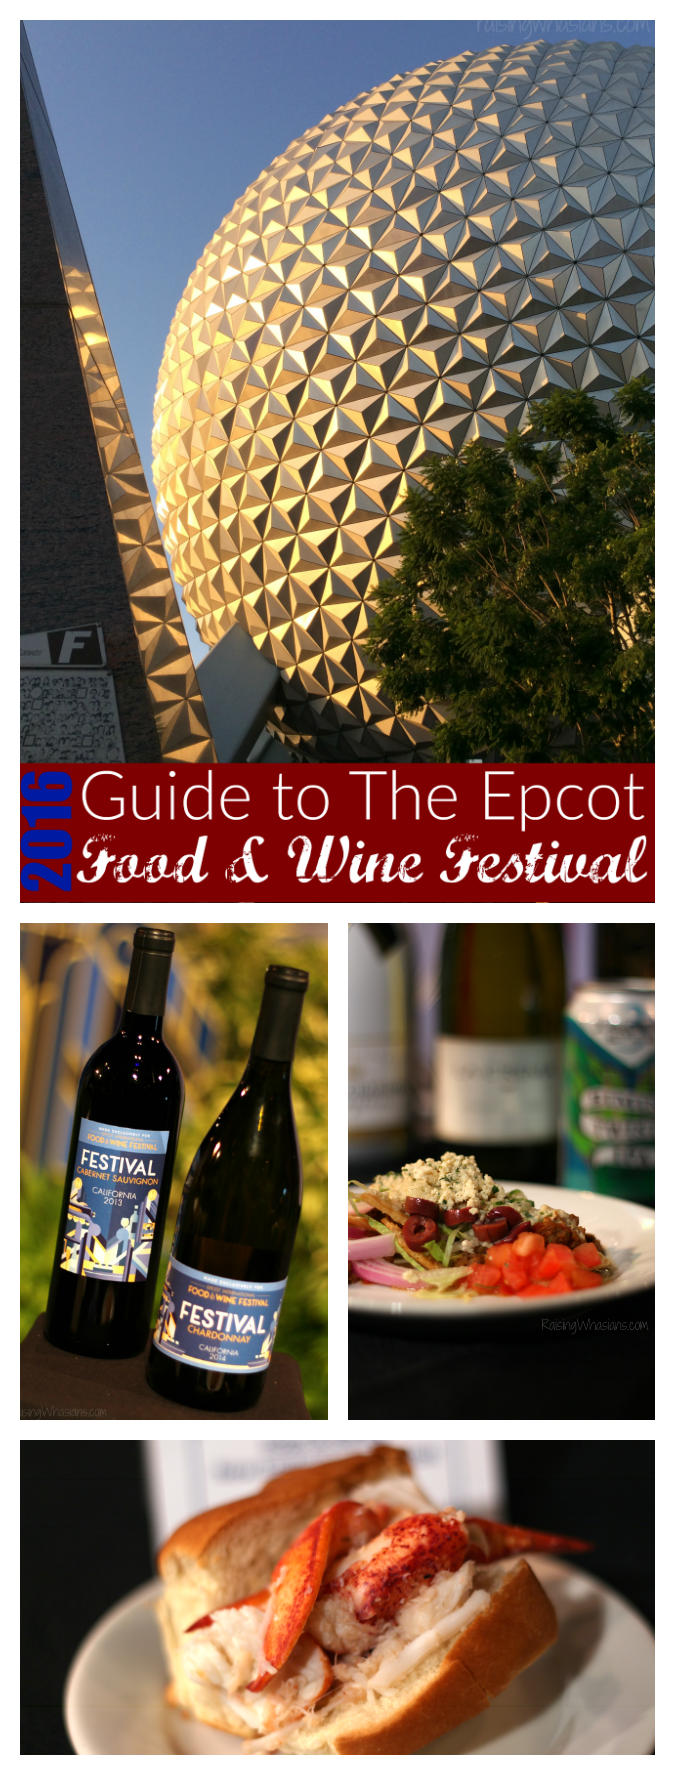 2016 Epcot food and wine festival guide pinterest